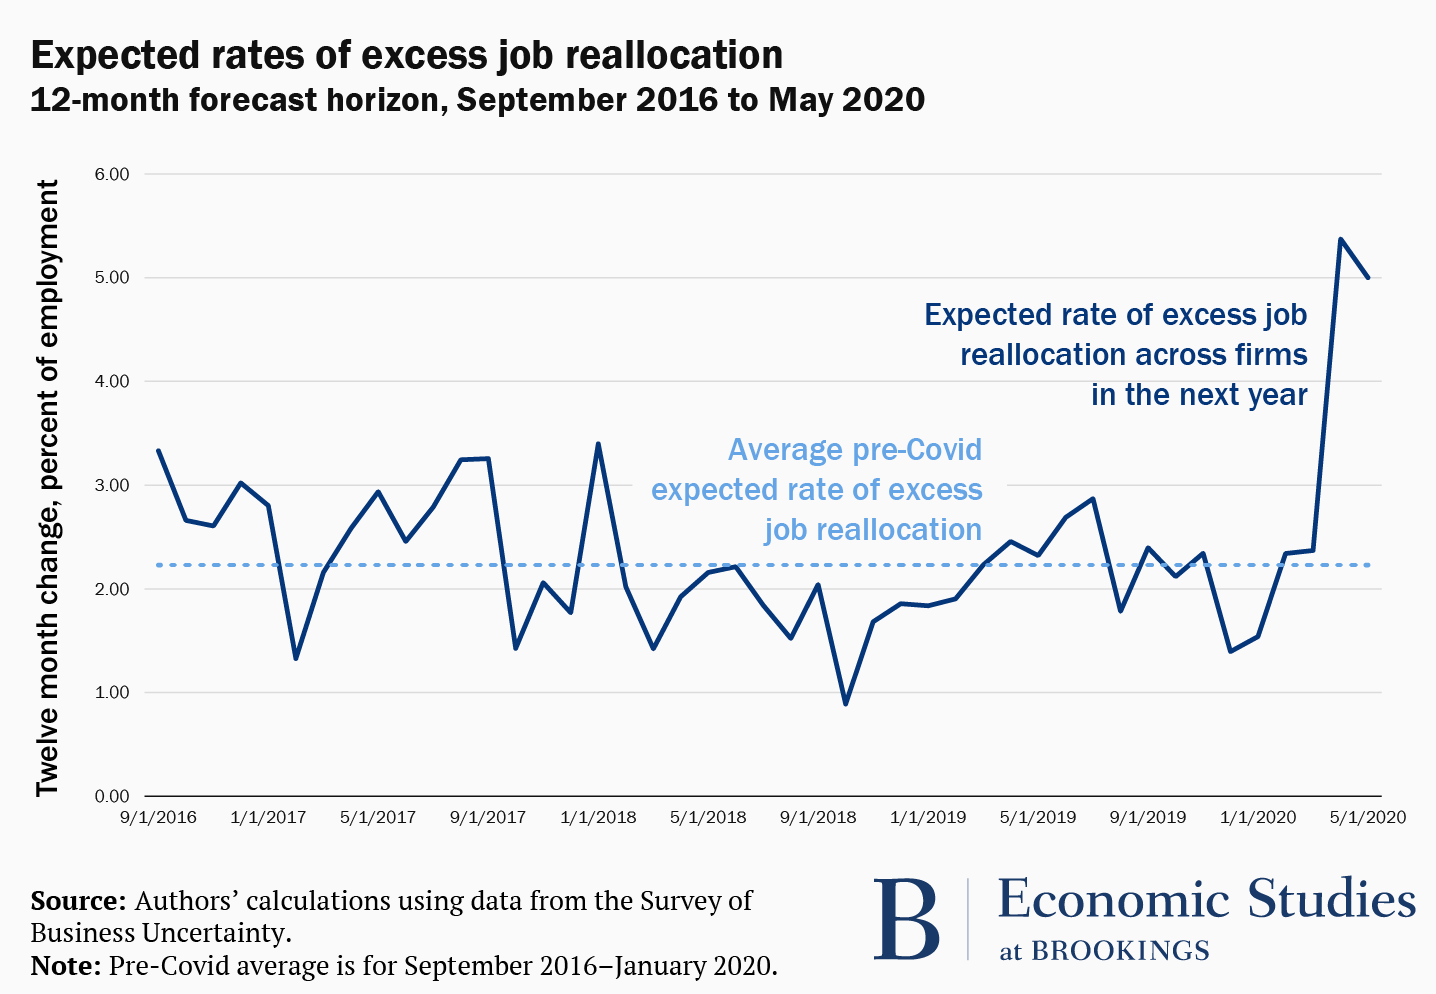 Line graph showing expected rates of excess job reallocation